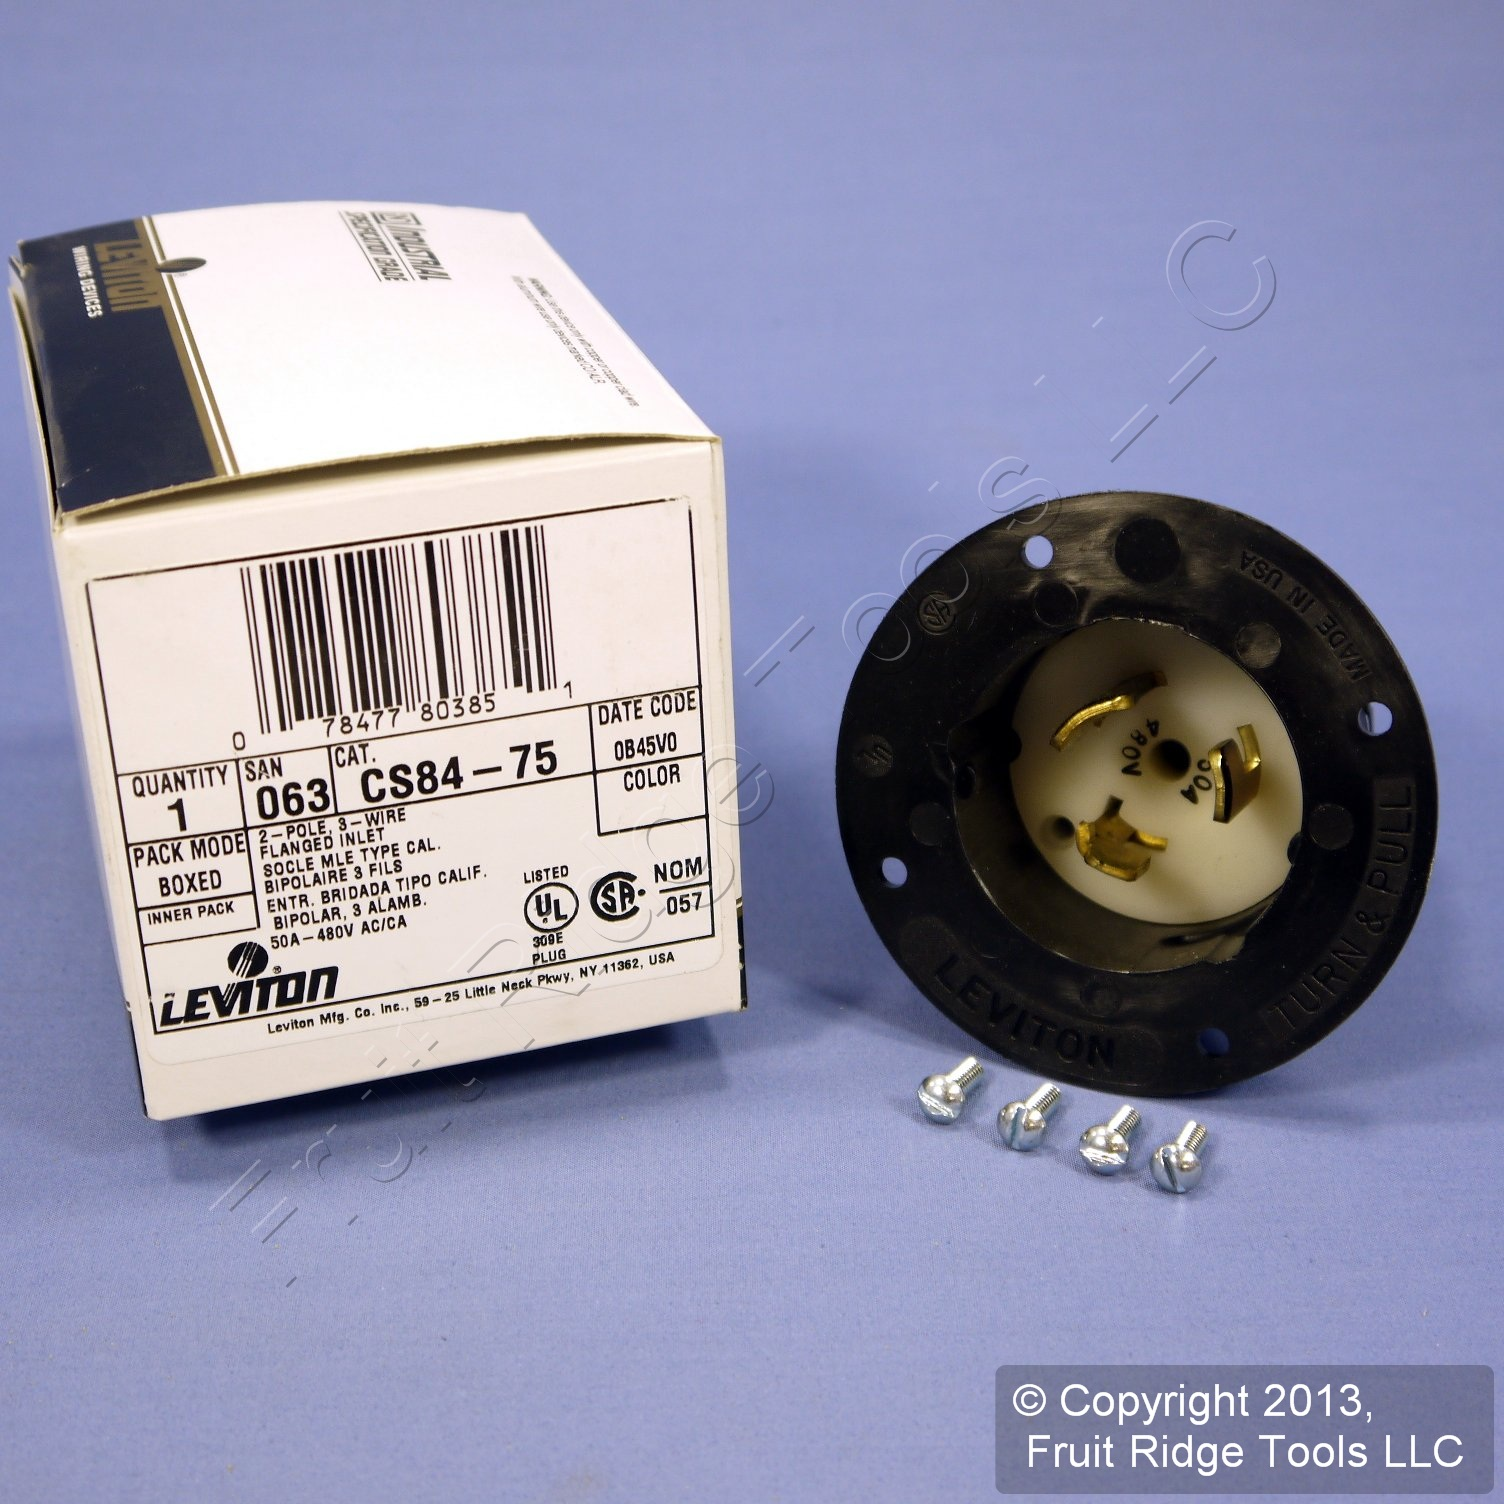 Shop Leviton California Locking Flanged Inlet Plug Twist Lock Wiring Devices Non Nema 50a 480v Cs84 75 Fruit Ridge Tools